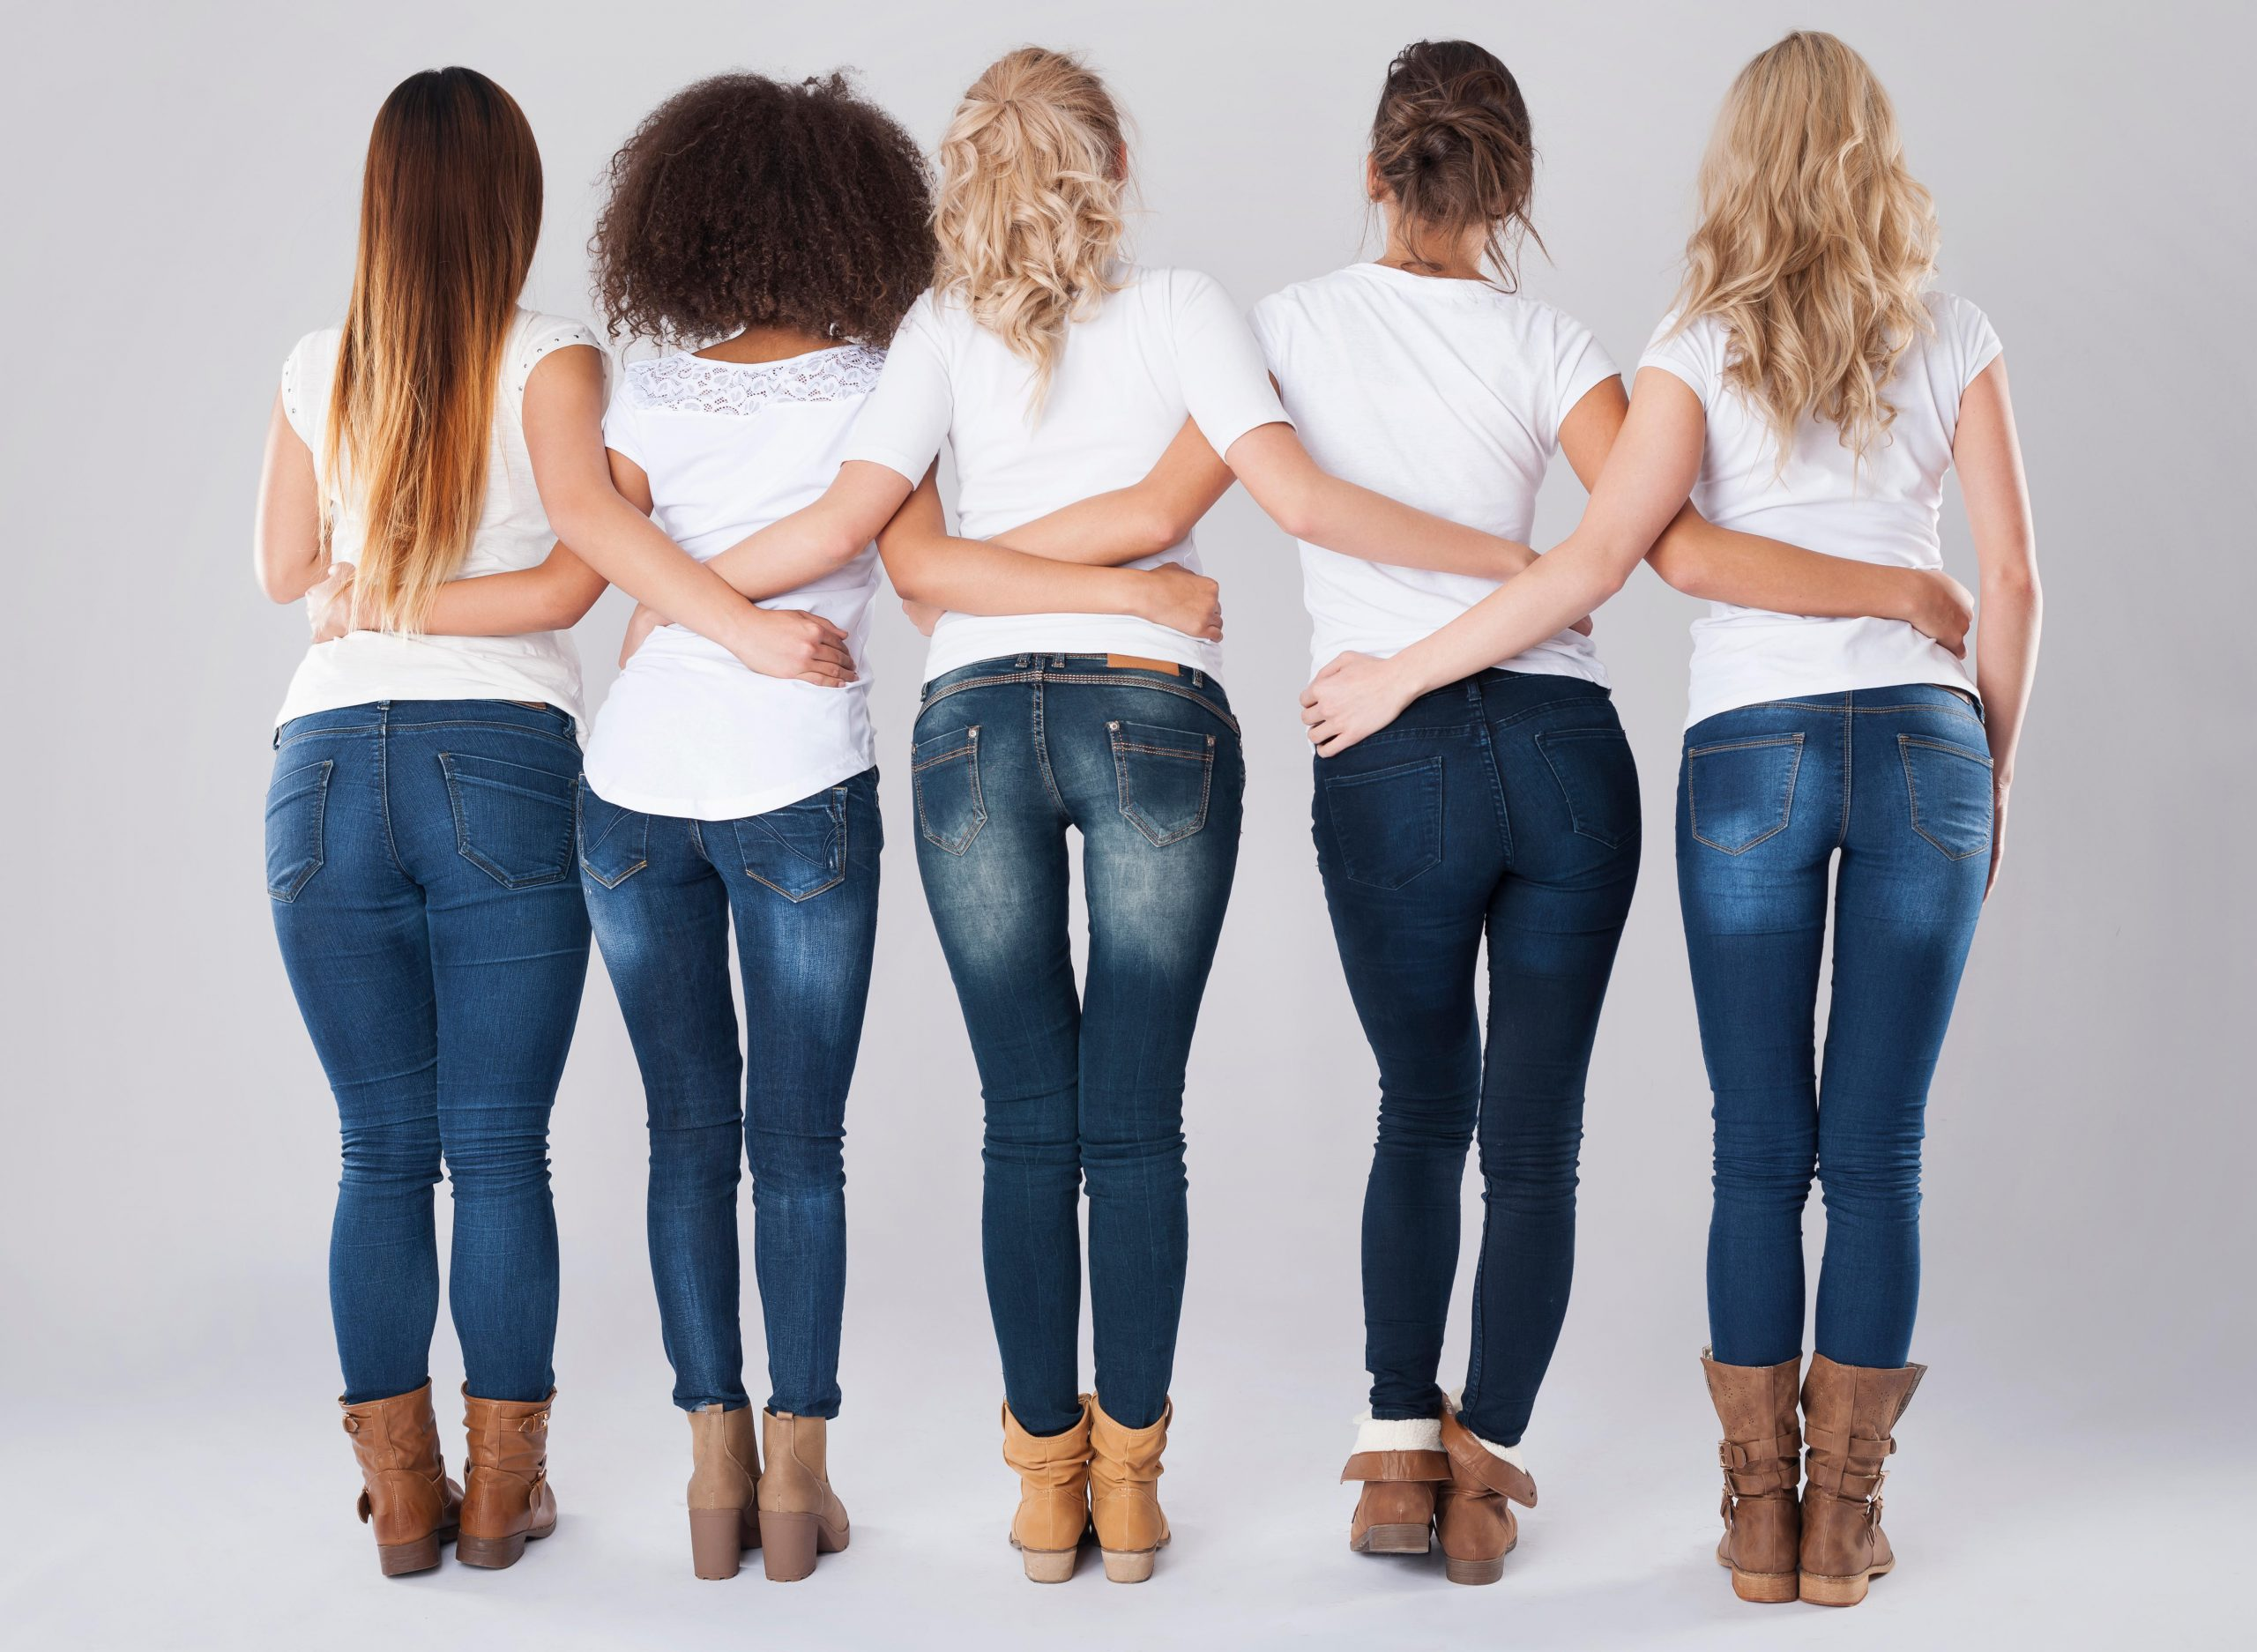 Best jeans for women: How to find the perfect shape